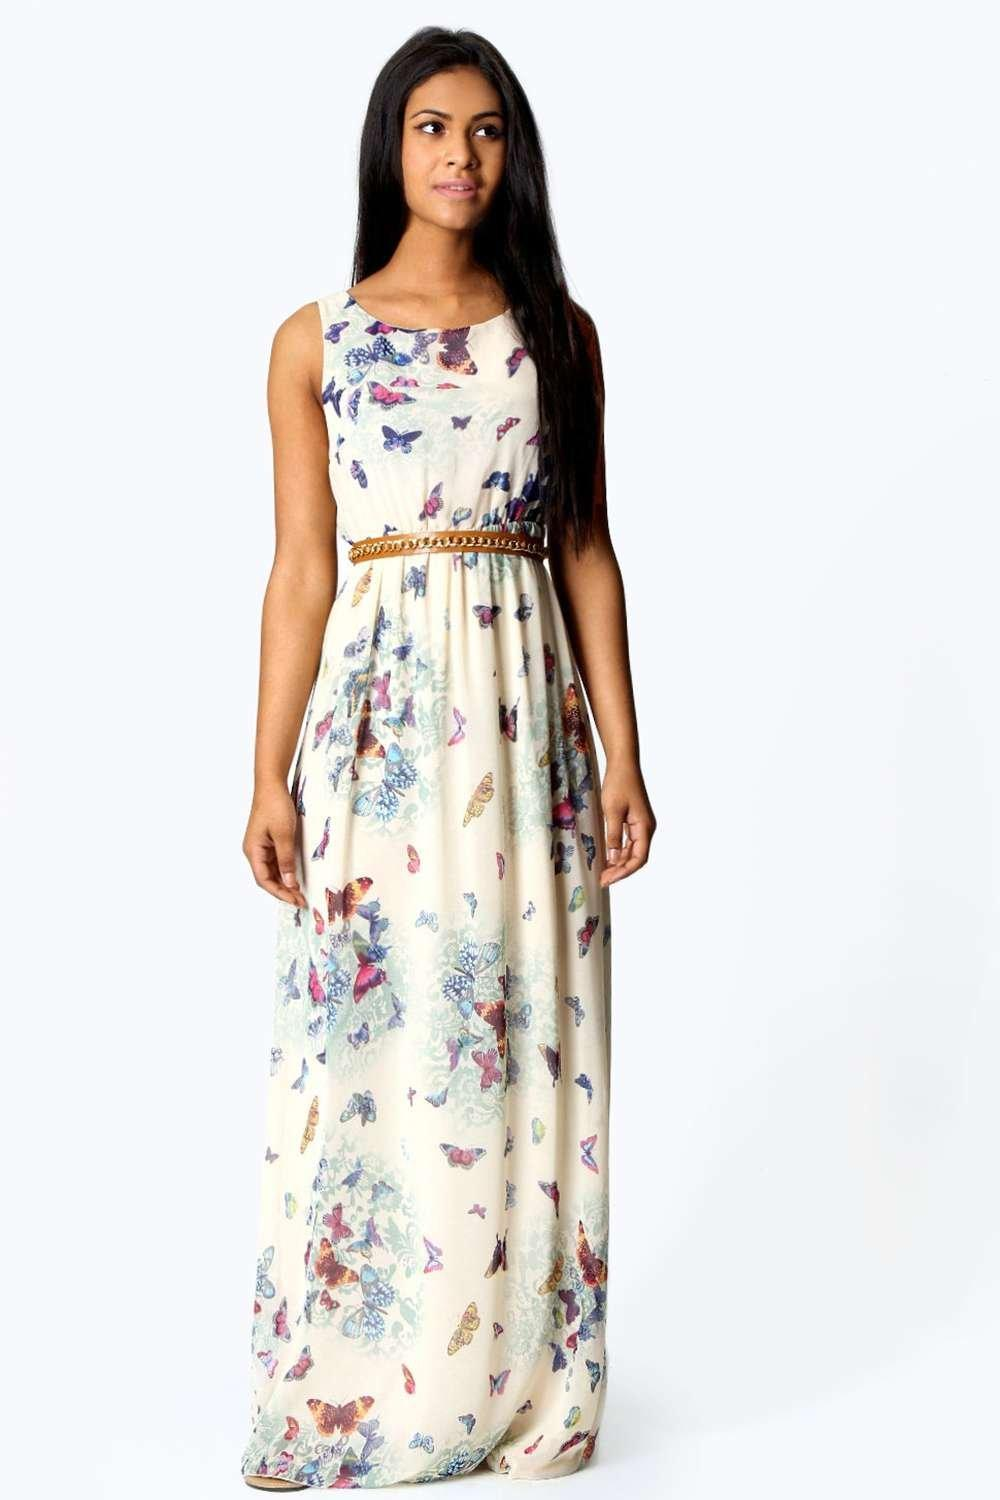 Fionna Chiffon Butterfly Print Open Back Maxi Dress at boohoo.com